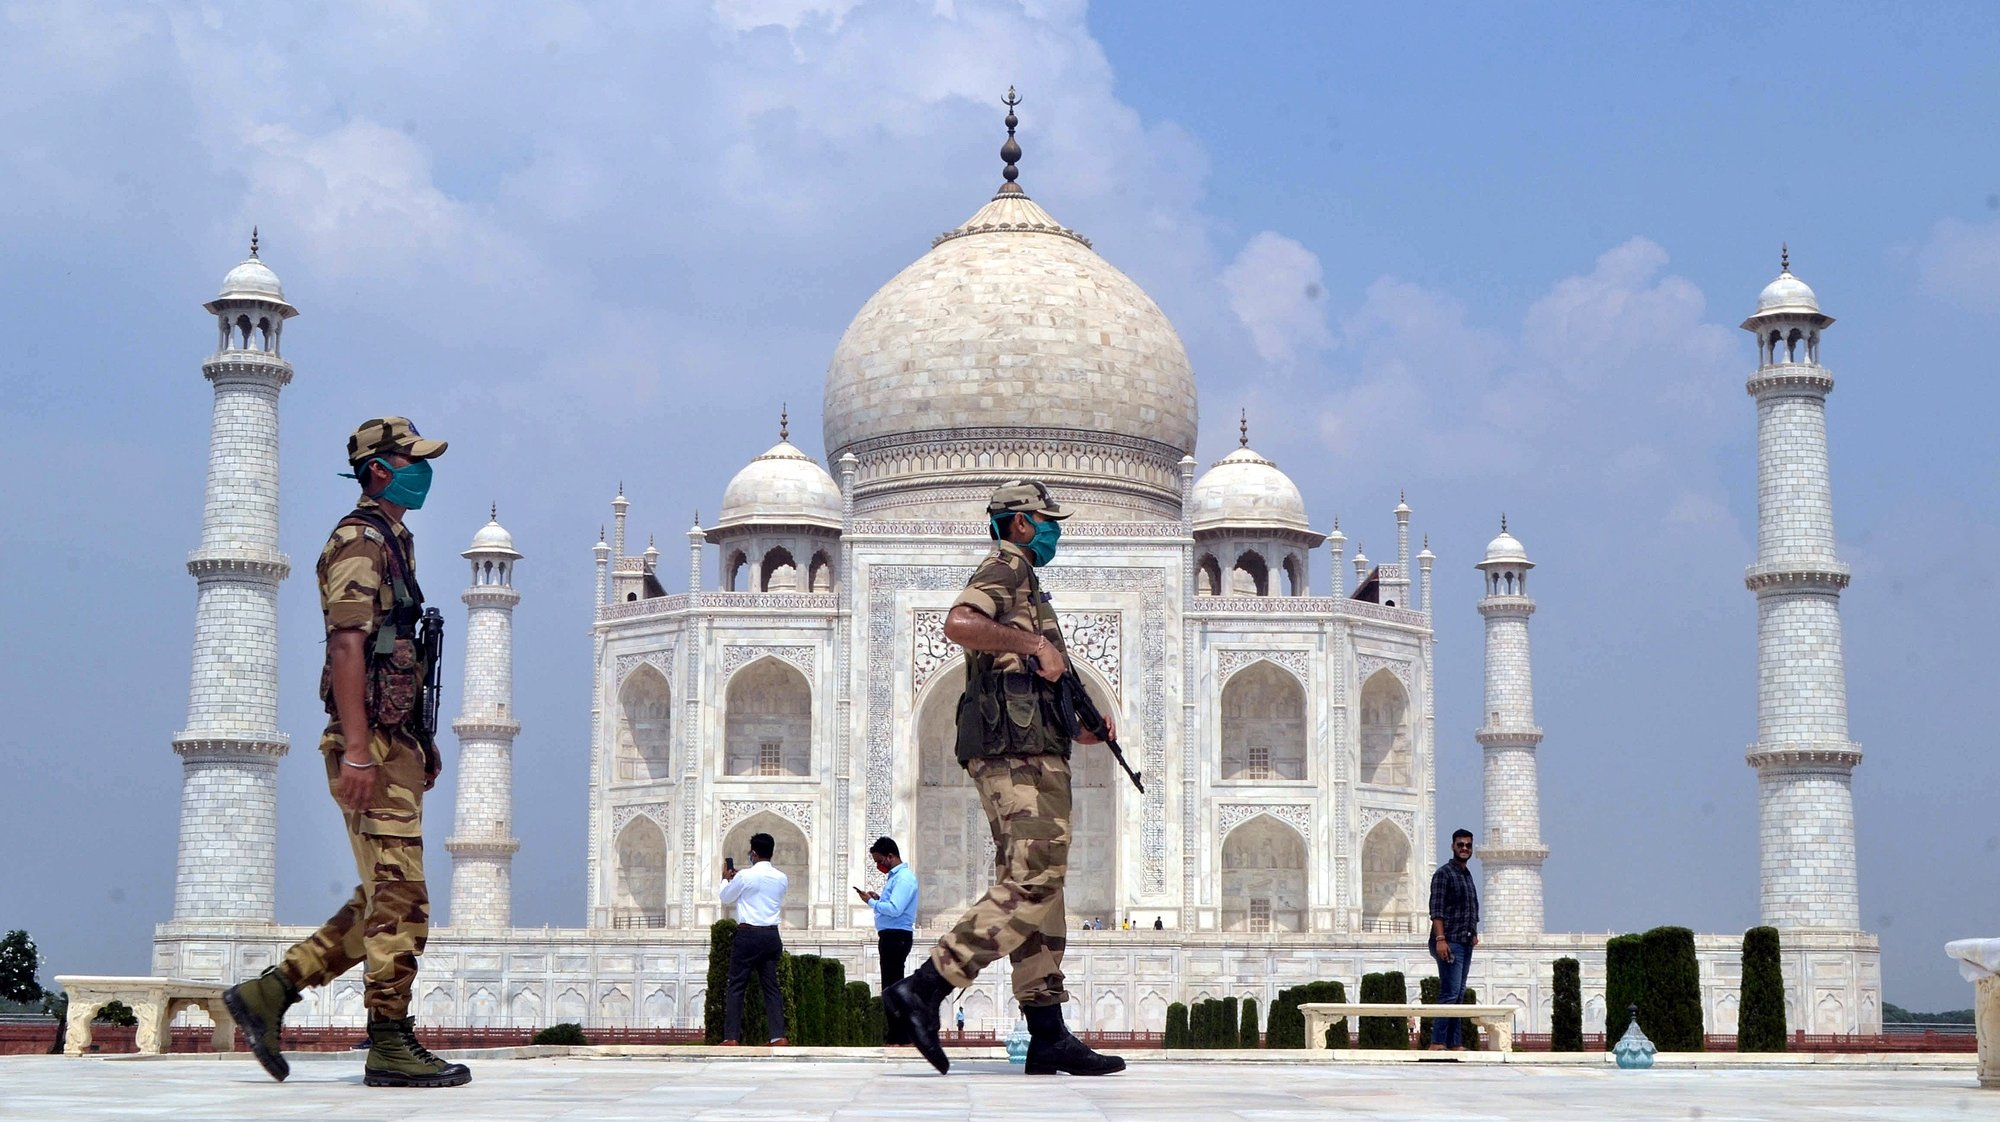 epa08685840 Indian security personnel stand guard at the Taj Mahal in Agra, Uttar Pradesh, India, 21 September 2020. The Taj Mahal reopened with increased safety measures after it was closed down by the authorities for six months amid the COVID-19 pandemic.  EPA/STR